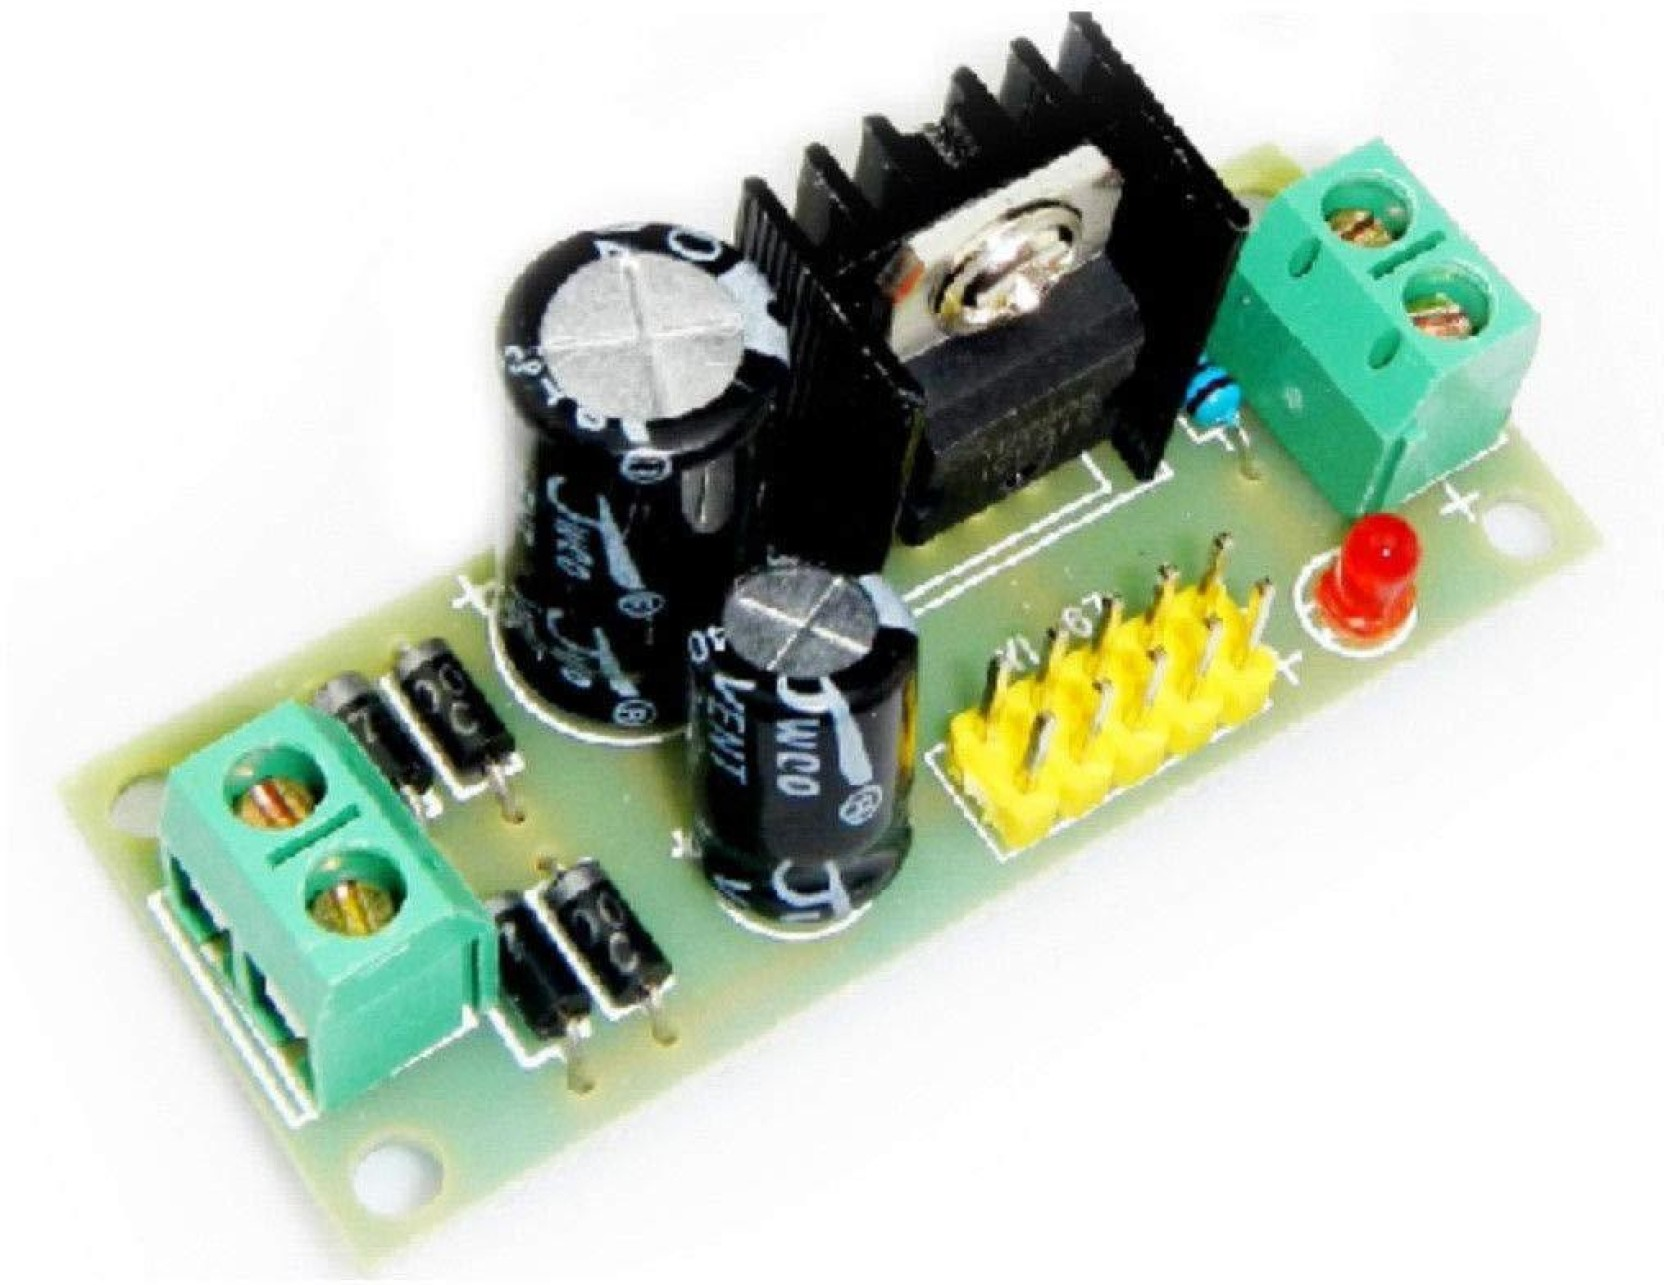 Arduino M418 L7805 Lm7805 Three Terminal Voltage Regulator Module 5v Links Dc Power Supply Variable Regulated Electronic Hobby Kit Add To Cart